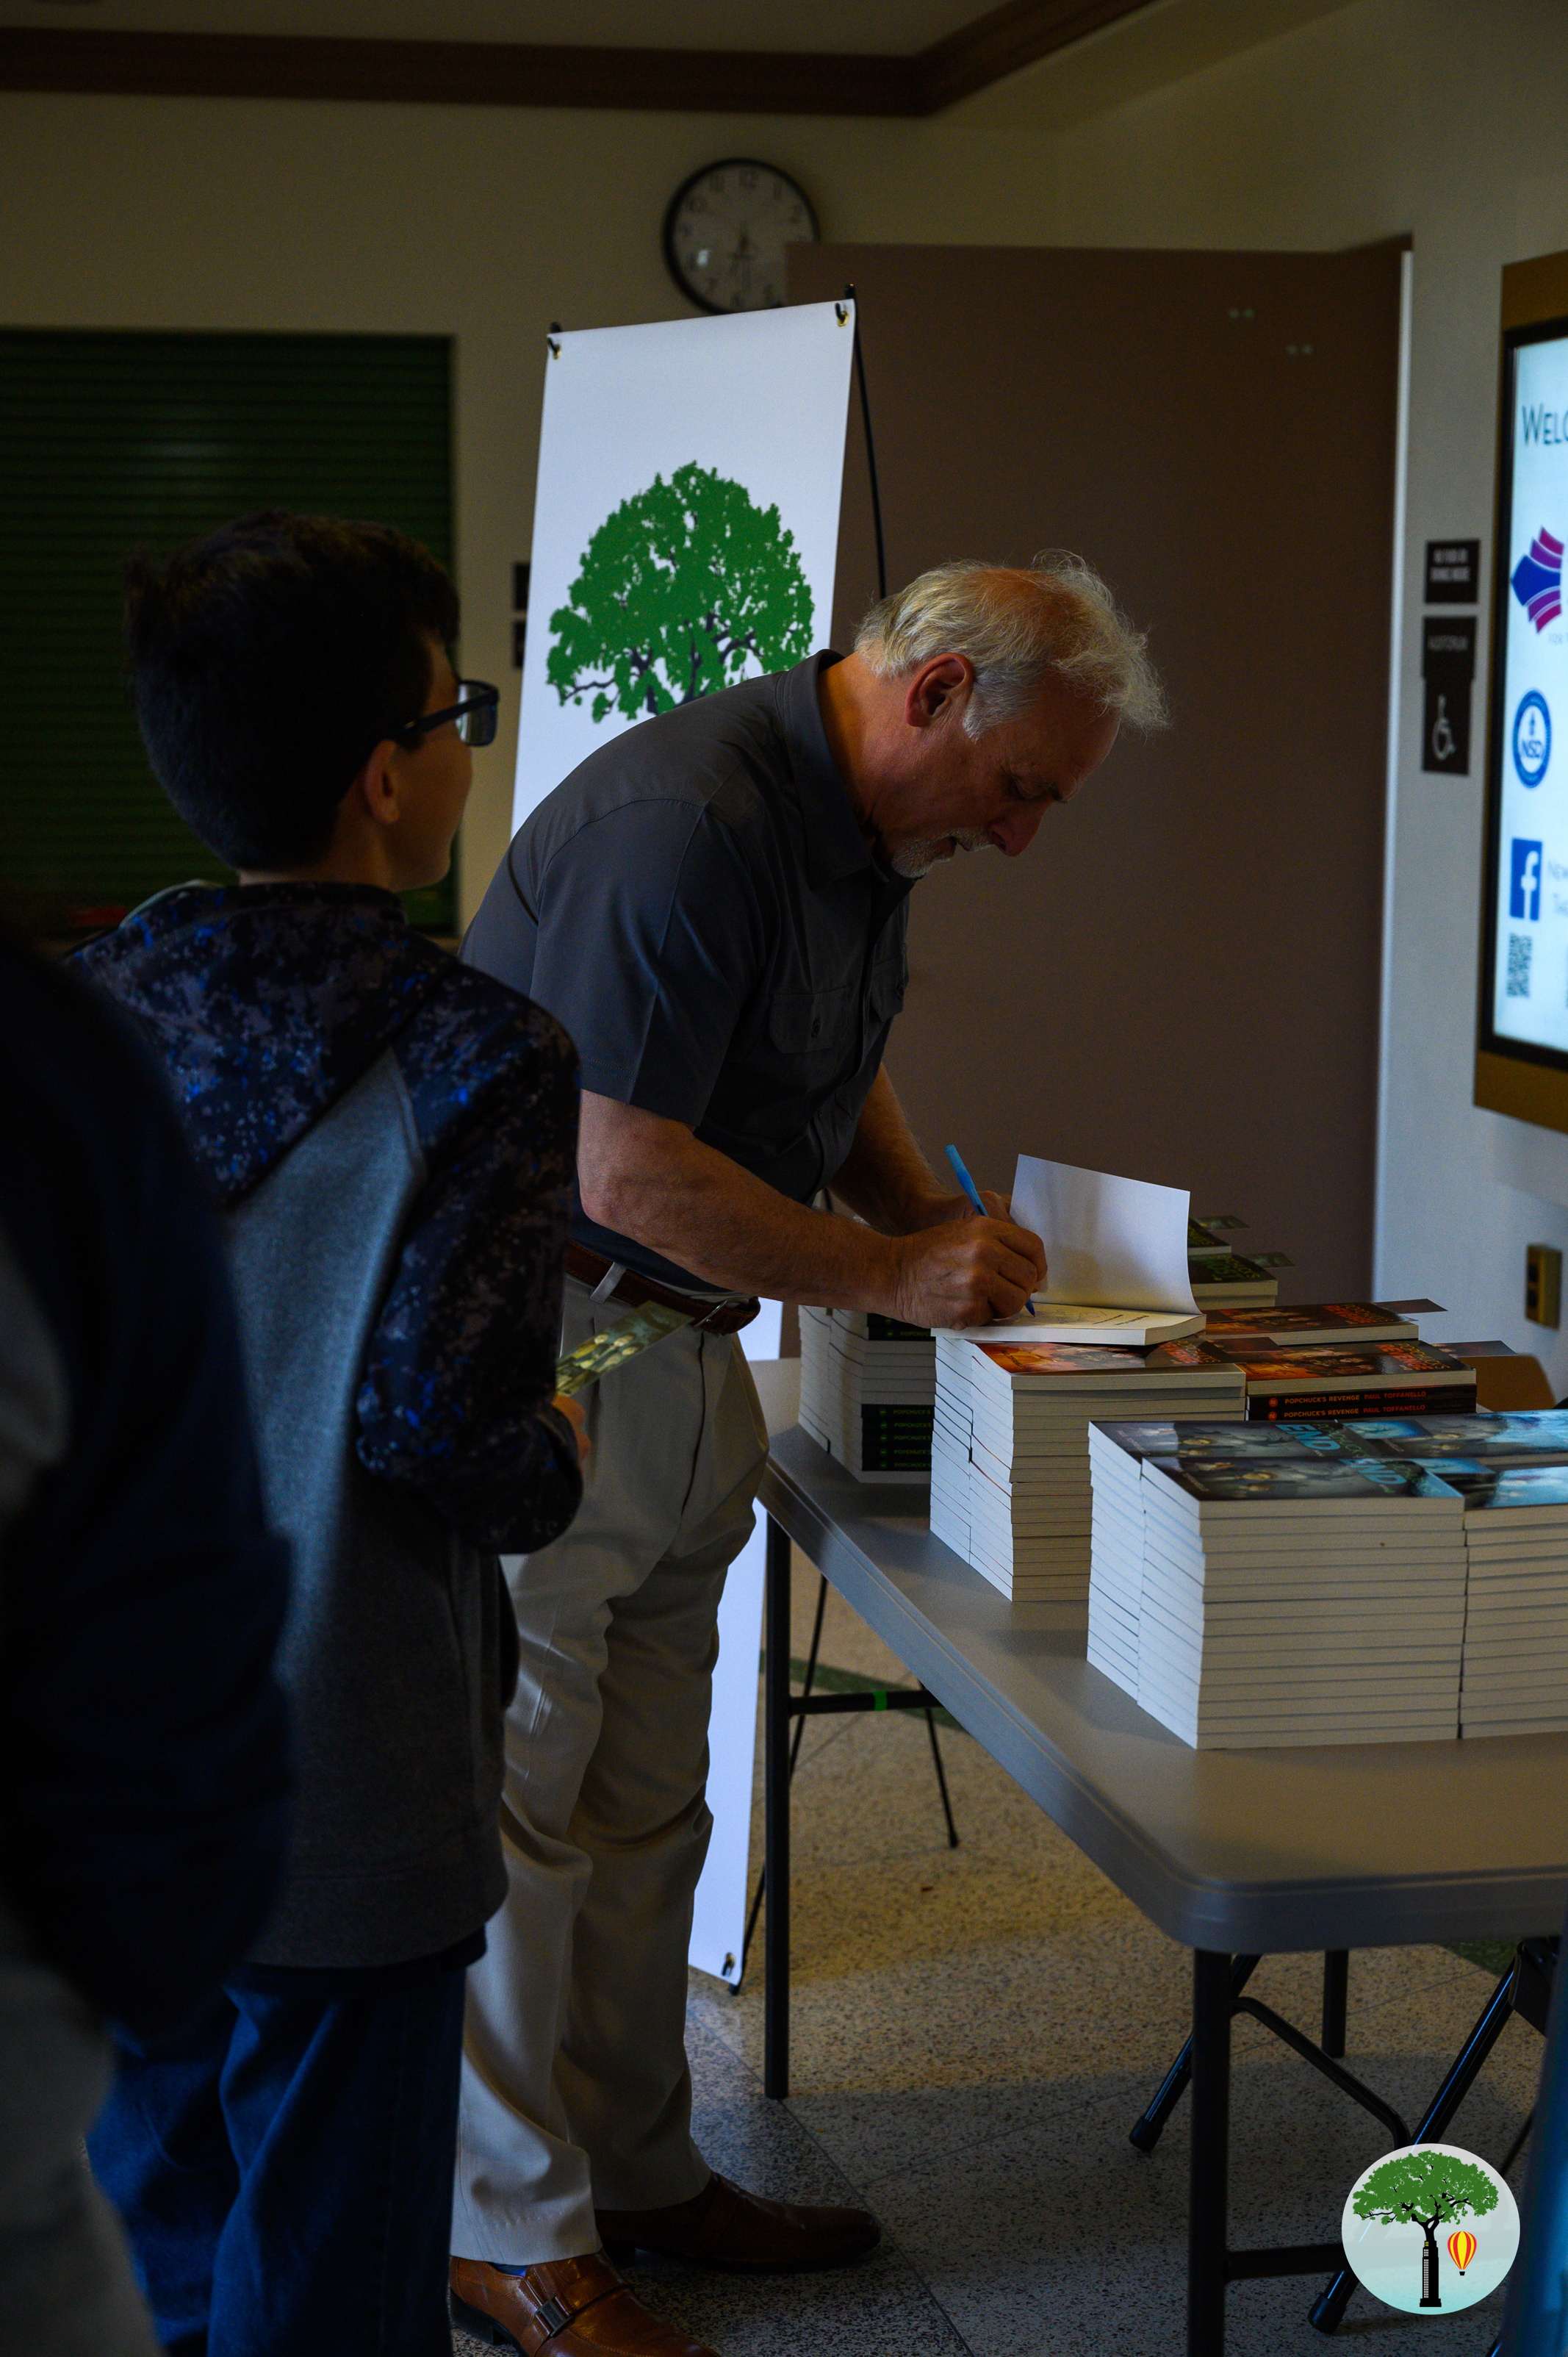 Paul Toffanello signs books for the audience members.